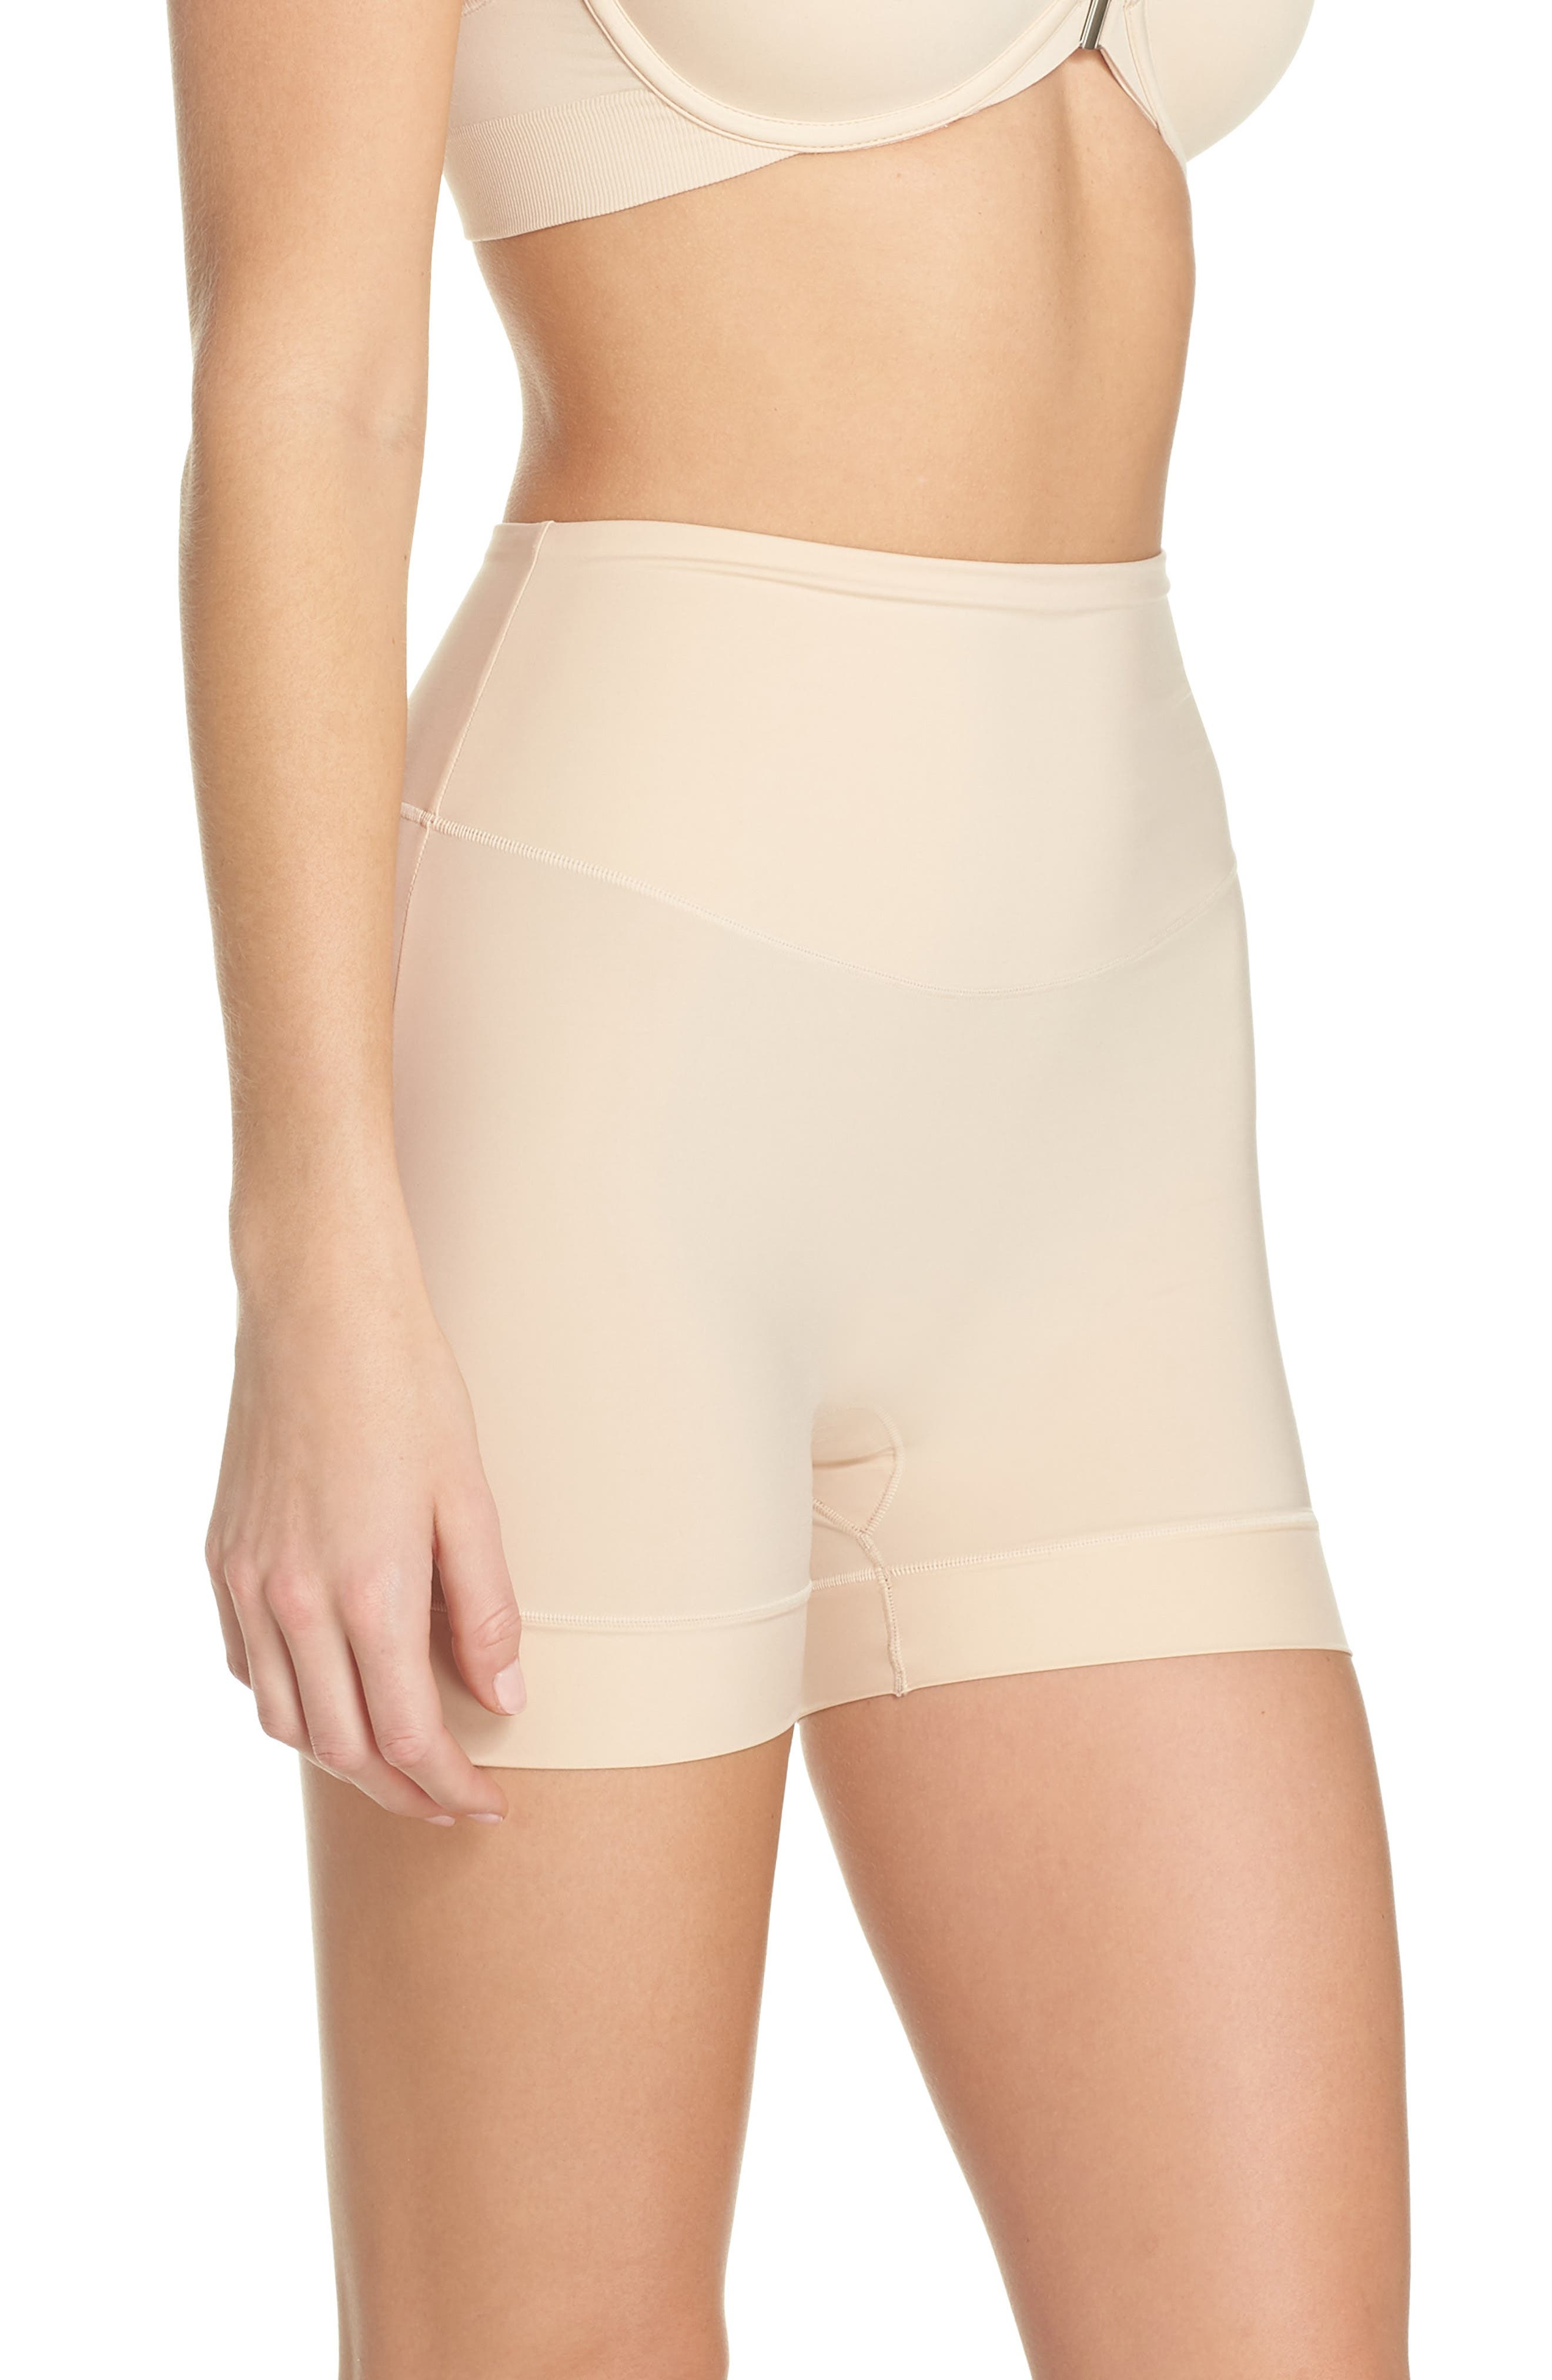 Tummie Tamers Mid Waist Shaping Shorts,                             Alternate thumbnail 3, color,                             Frappe